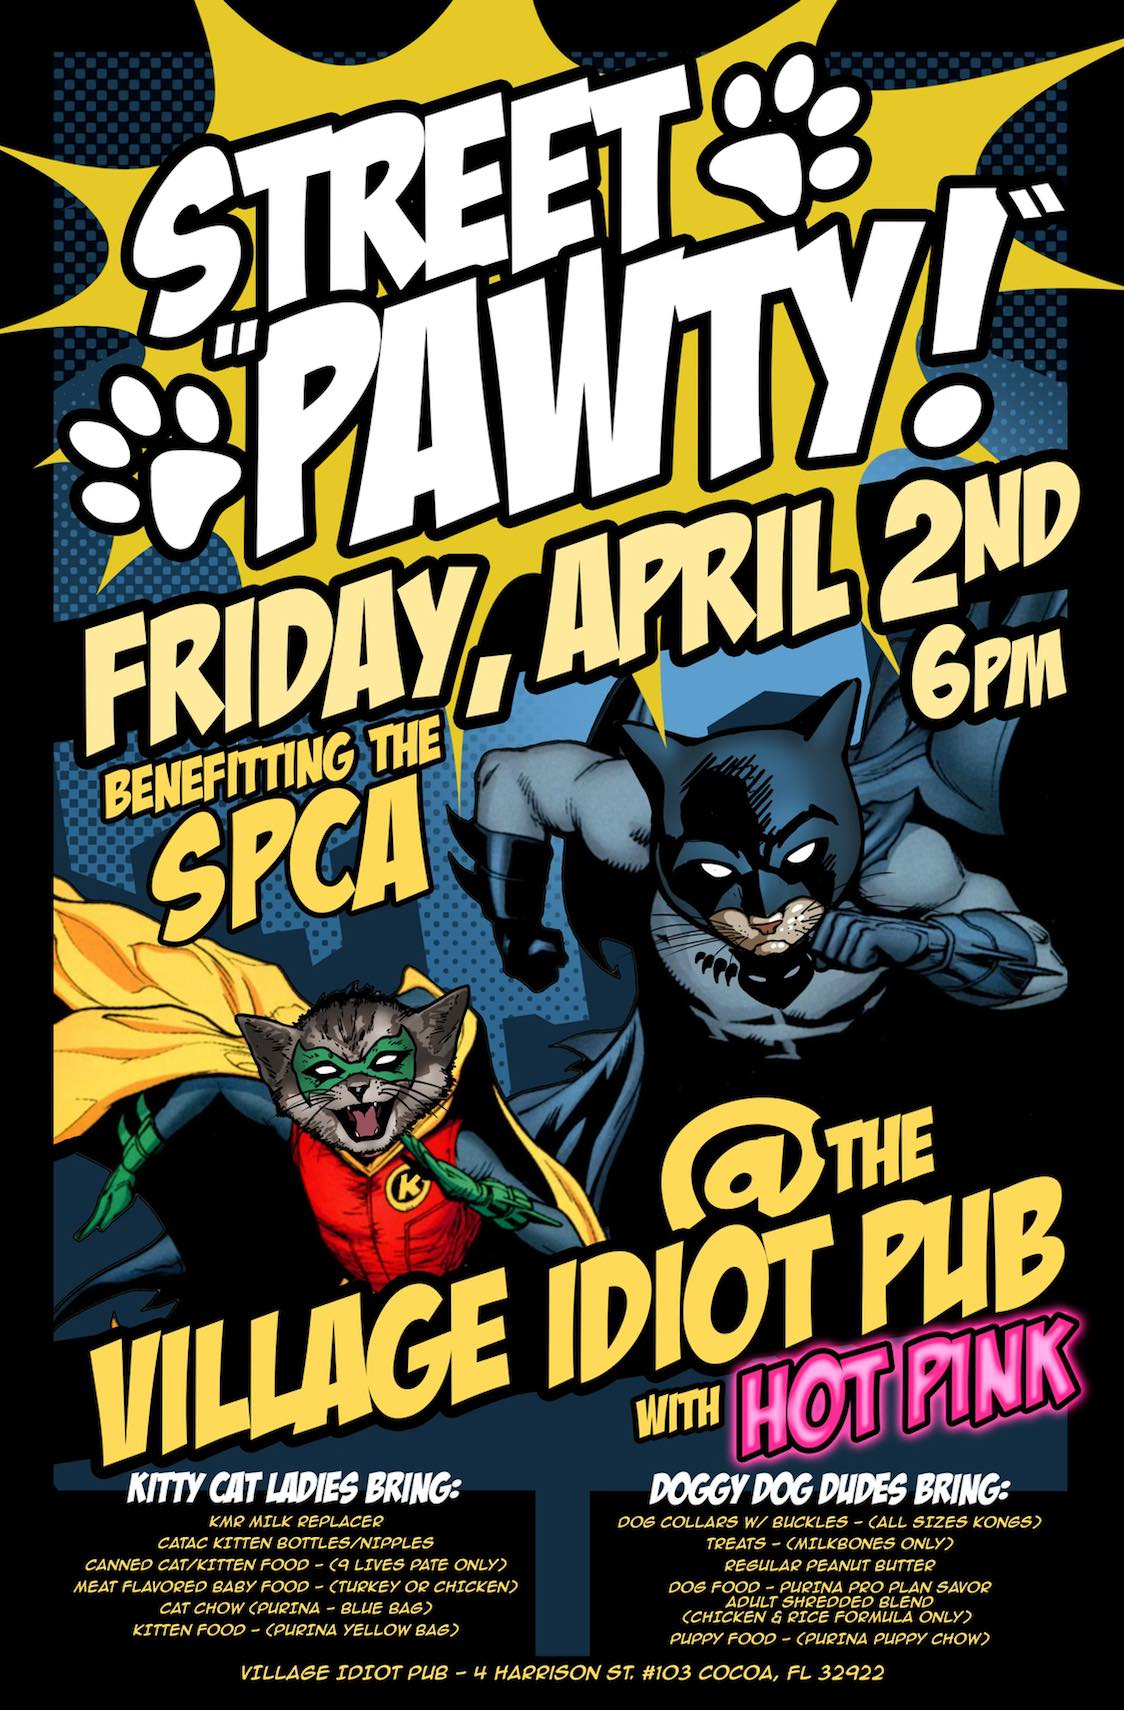 Street Pawty Friday April 2 starting at 6pm at the Village Idiot Pub benefiting the SPCA with Hot Pink